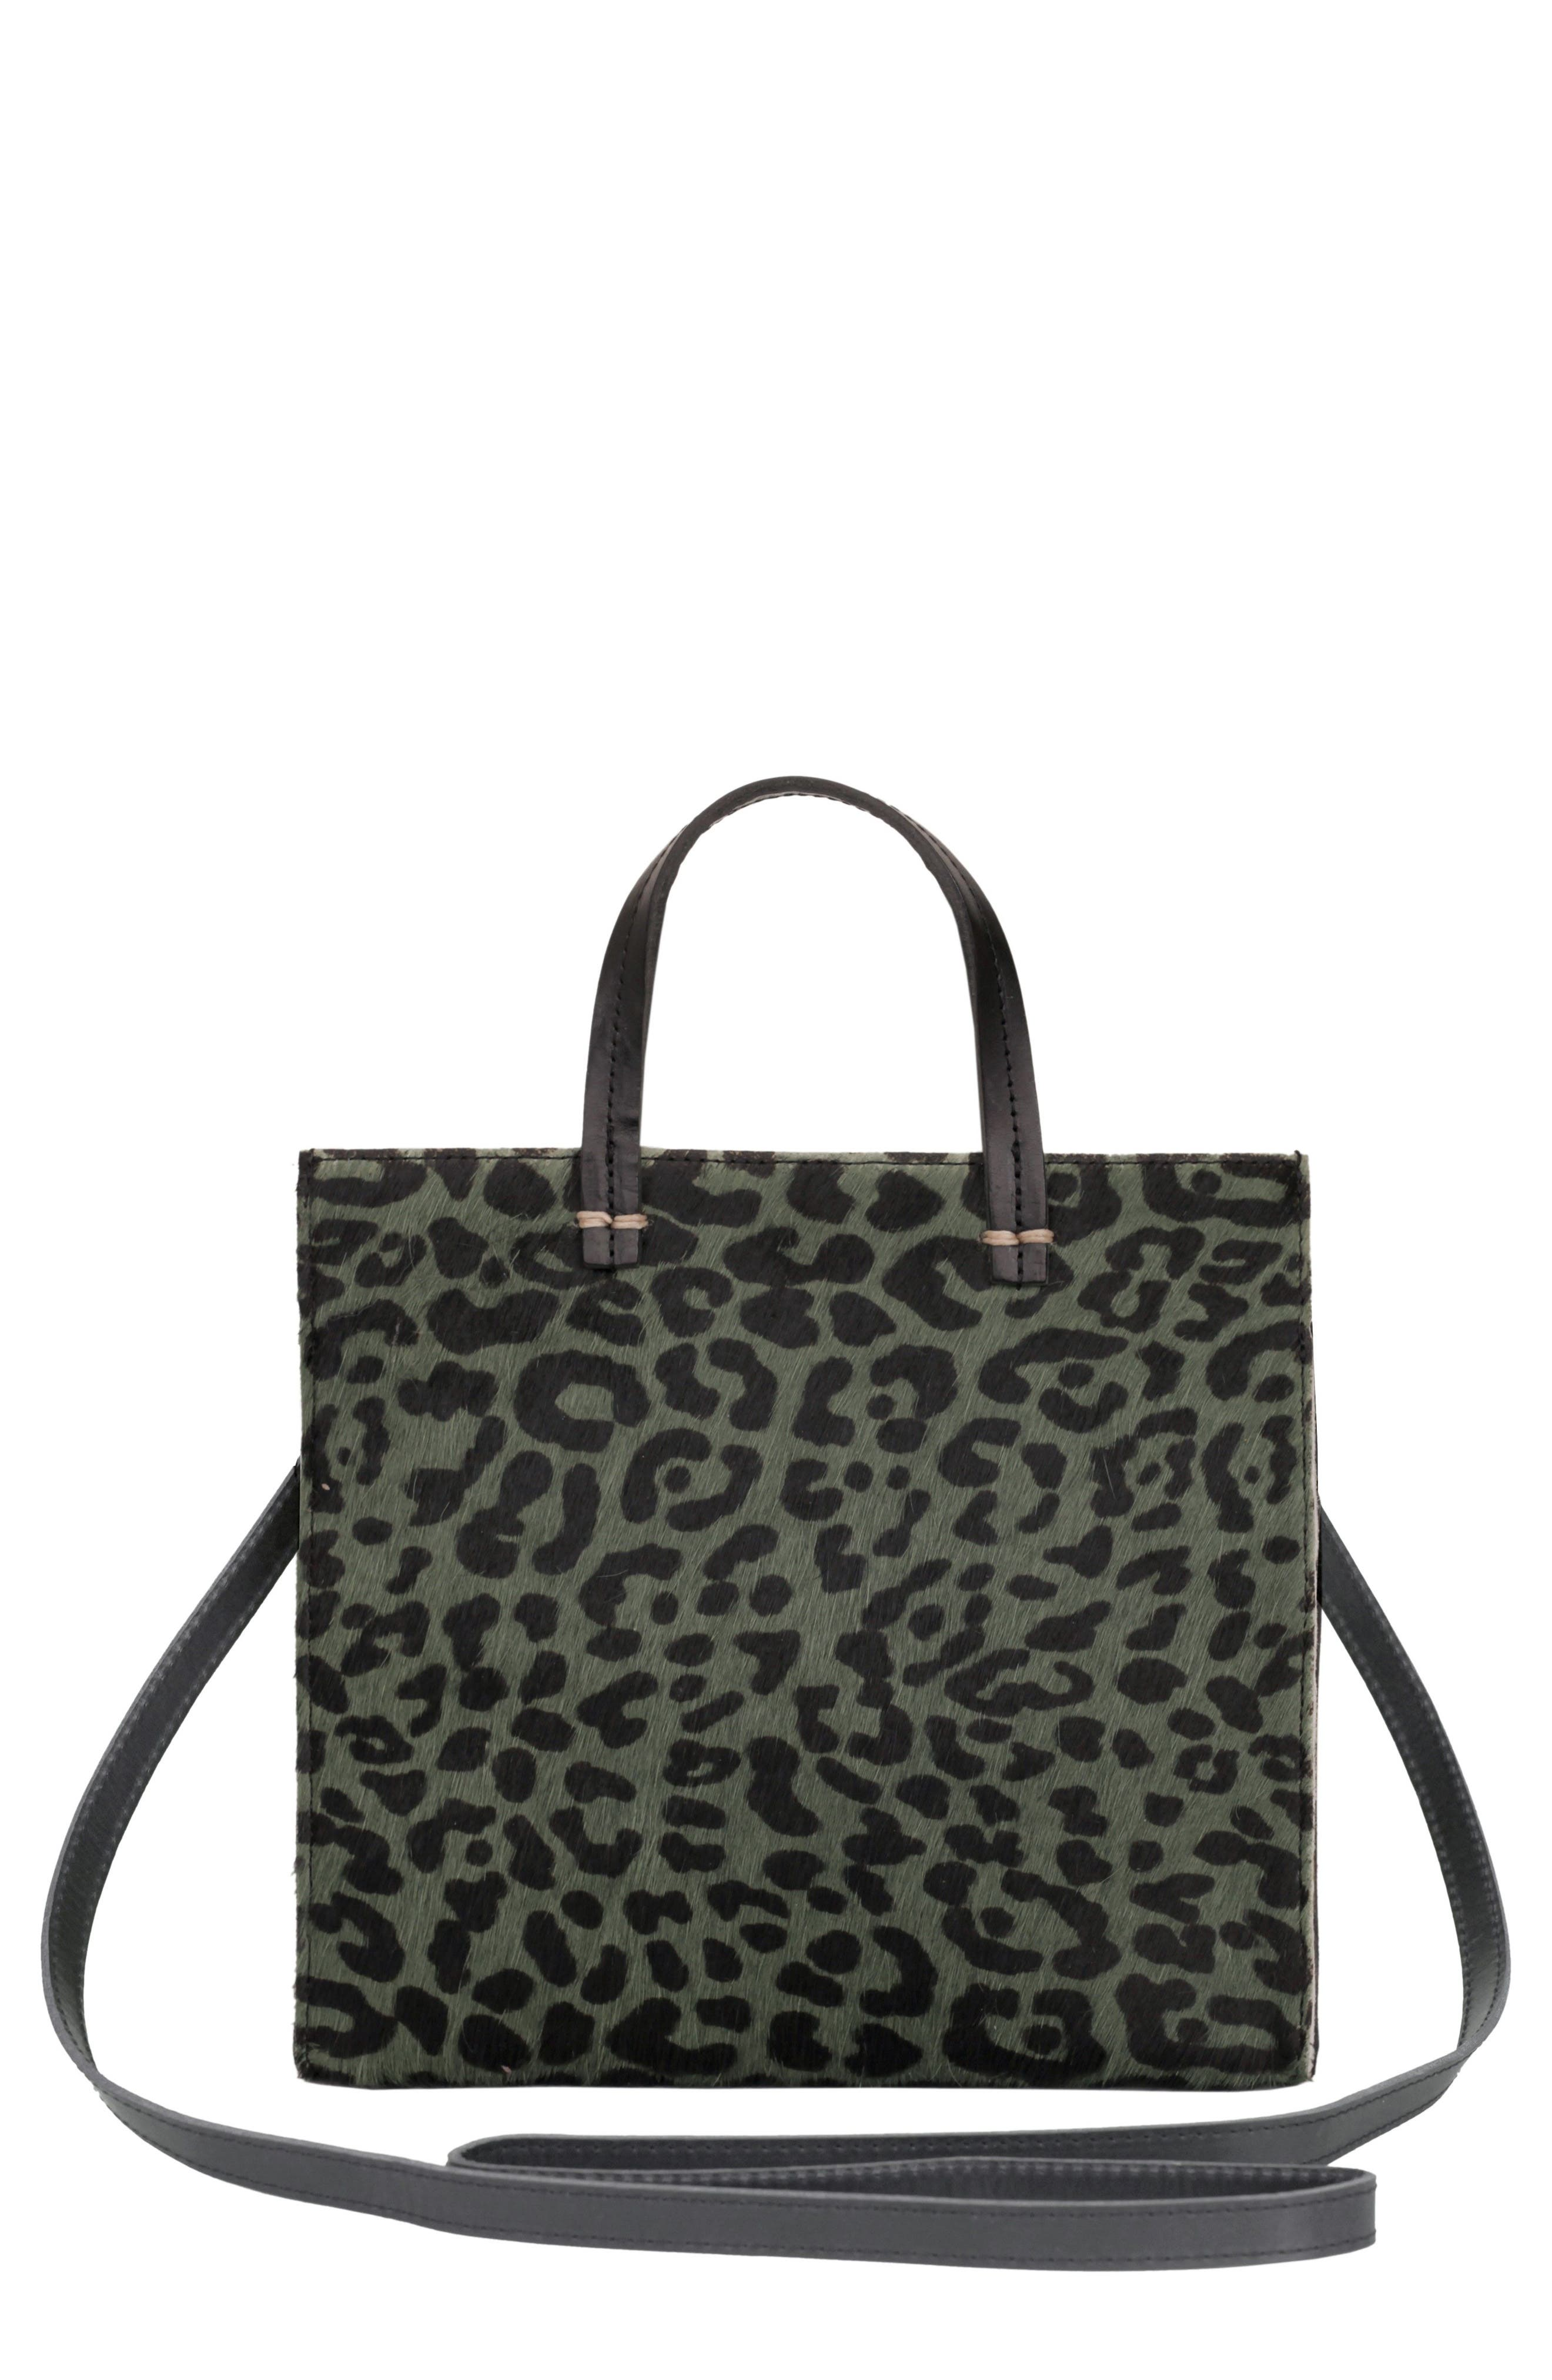 CLARE V. Small Petit Simple Leopard Print Genuine Calf Hair Tote